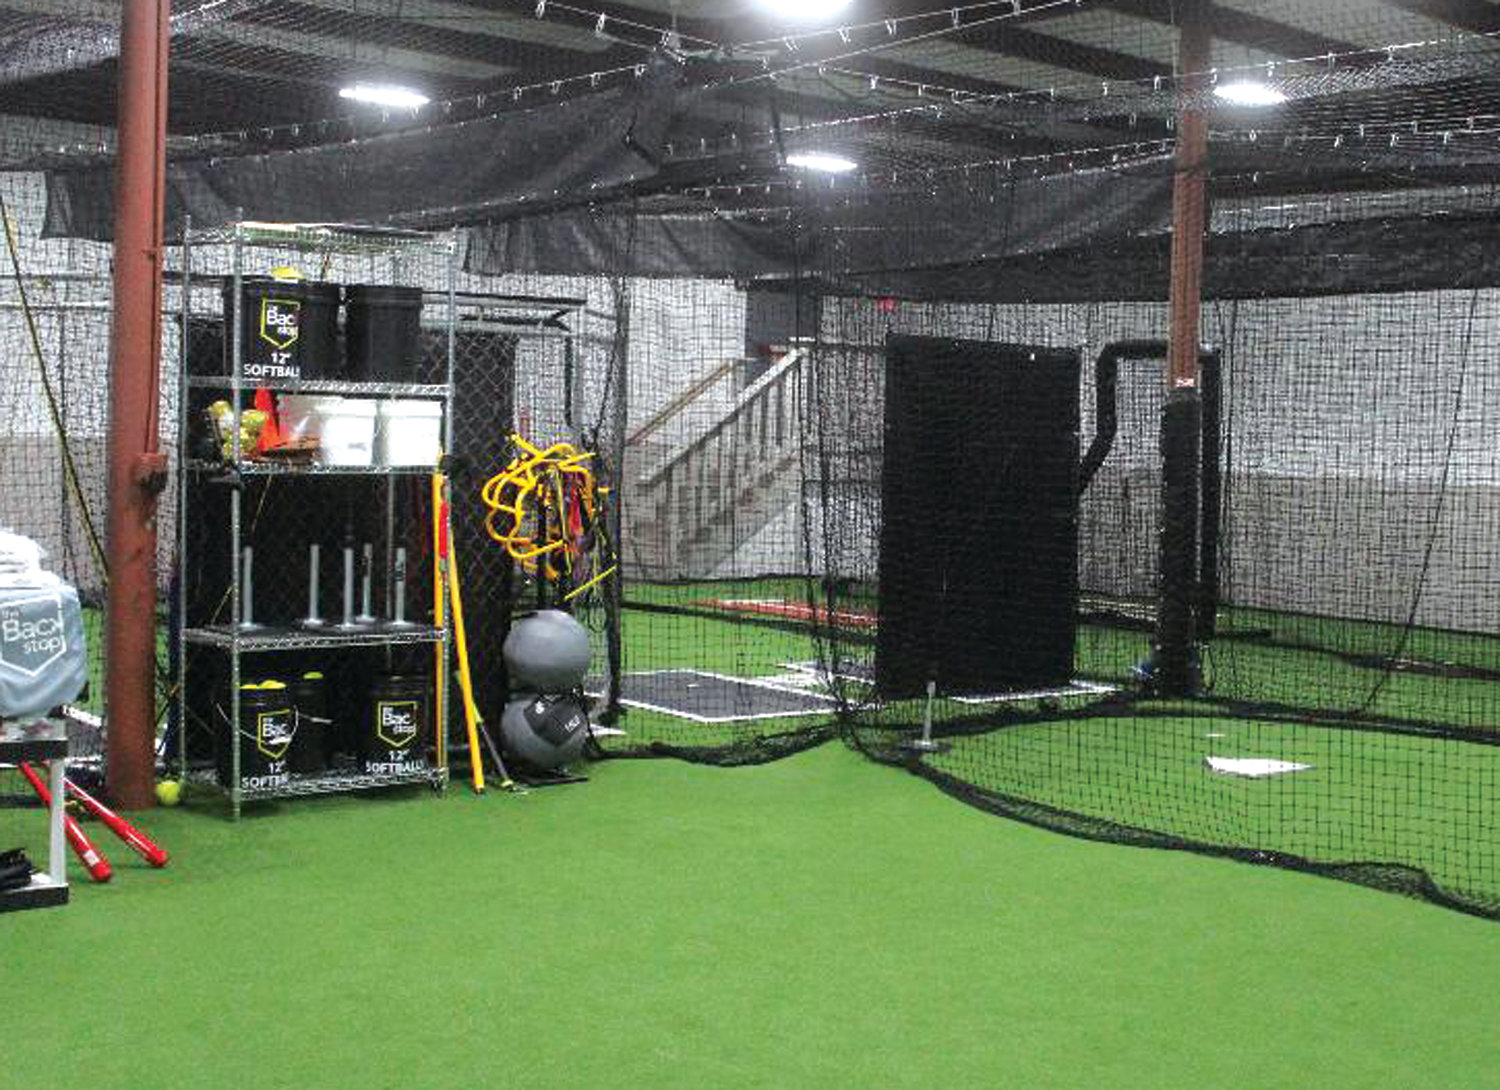 SWINGING AWAY: A look at The Backstop softball facility located on Bald Hill Road in Warwick.